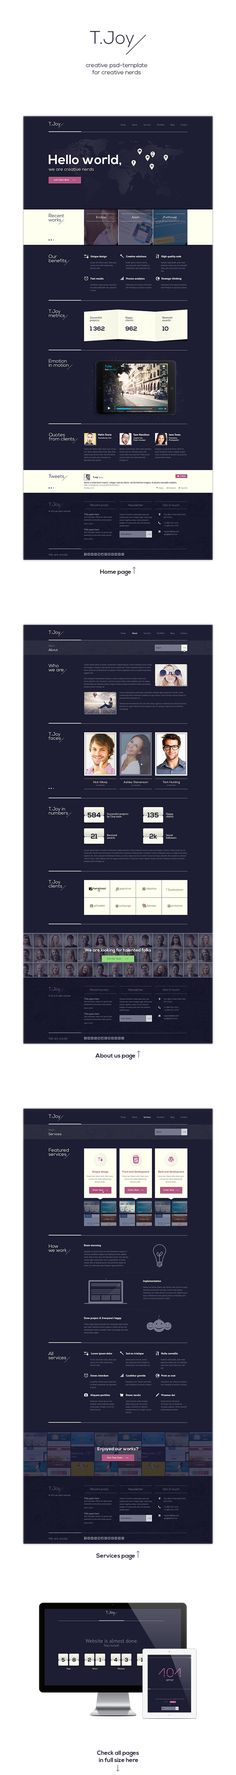 T.Joy - Flat Multipurpose PSD Template by Olia Gozha, via Behance